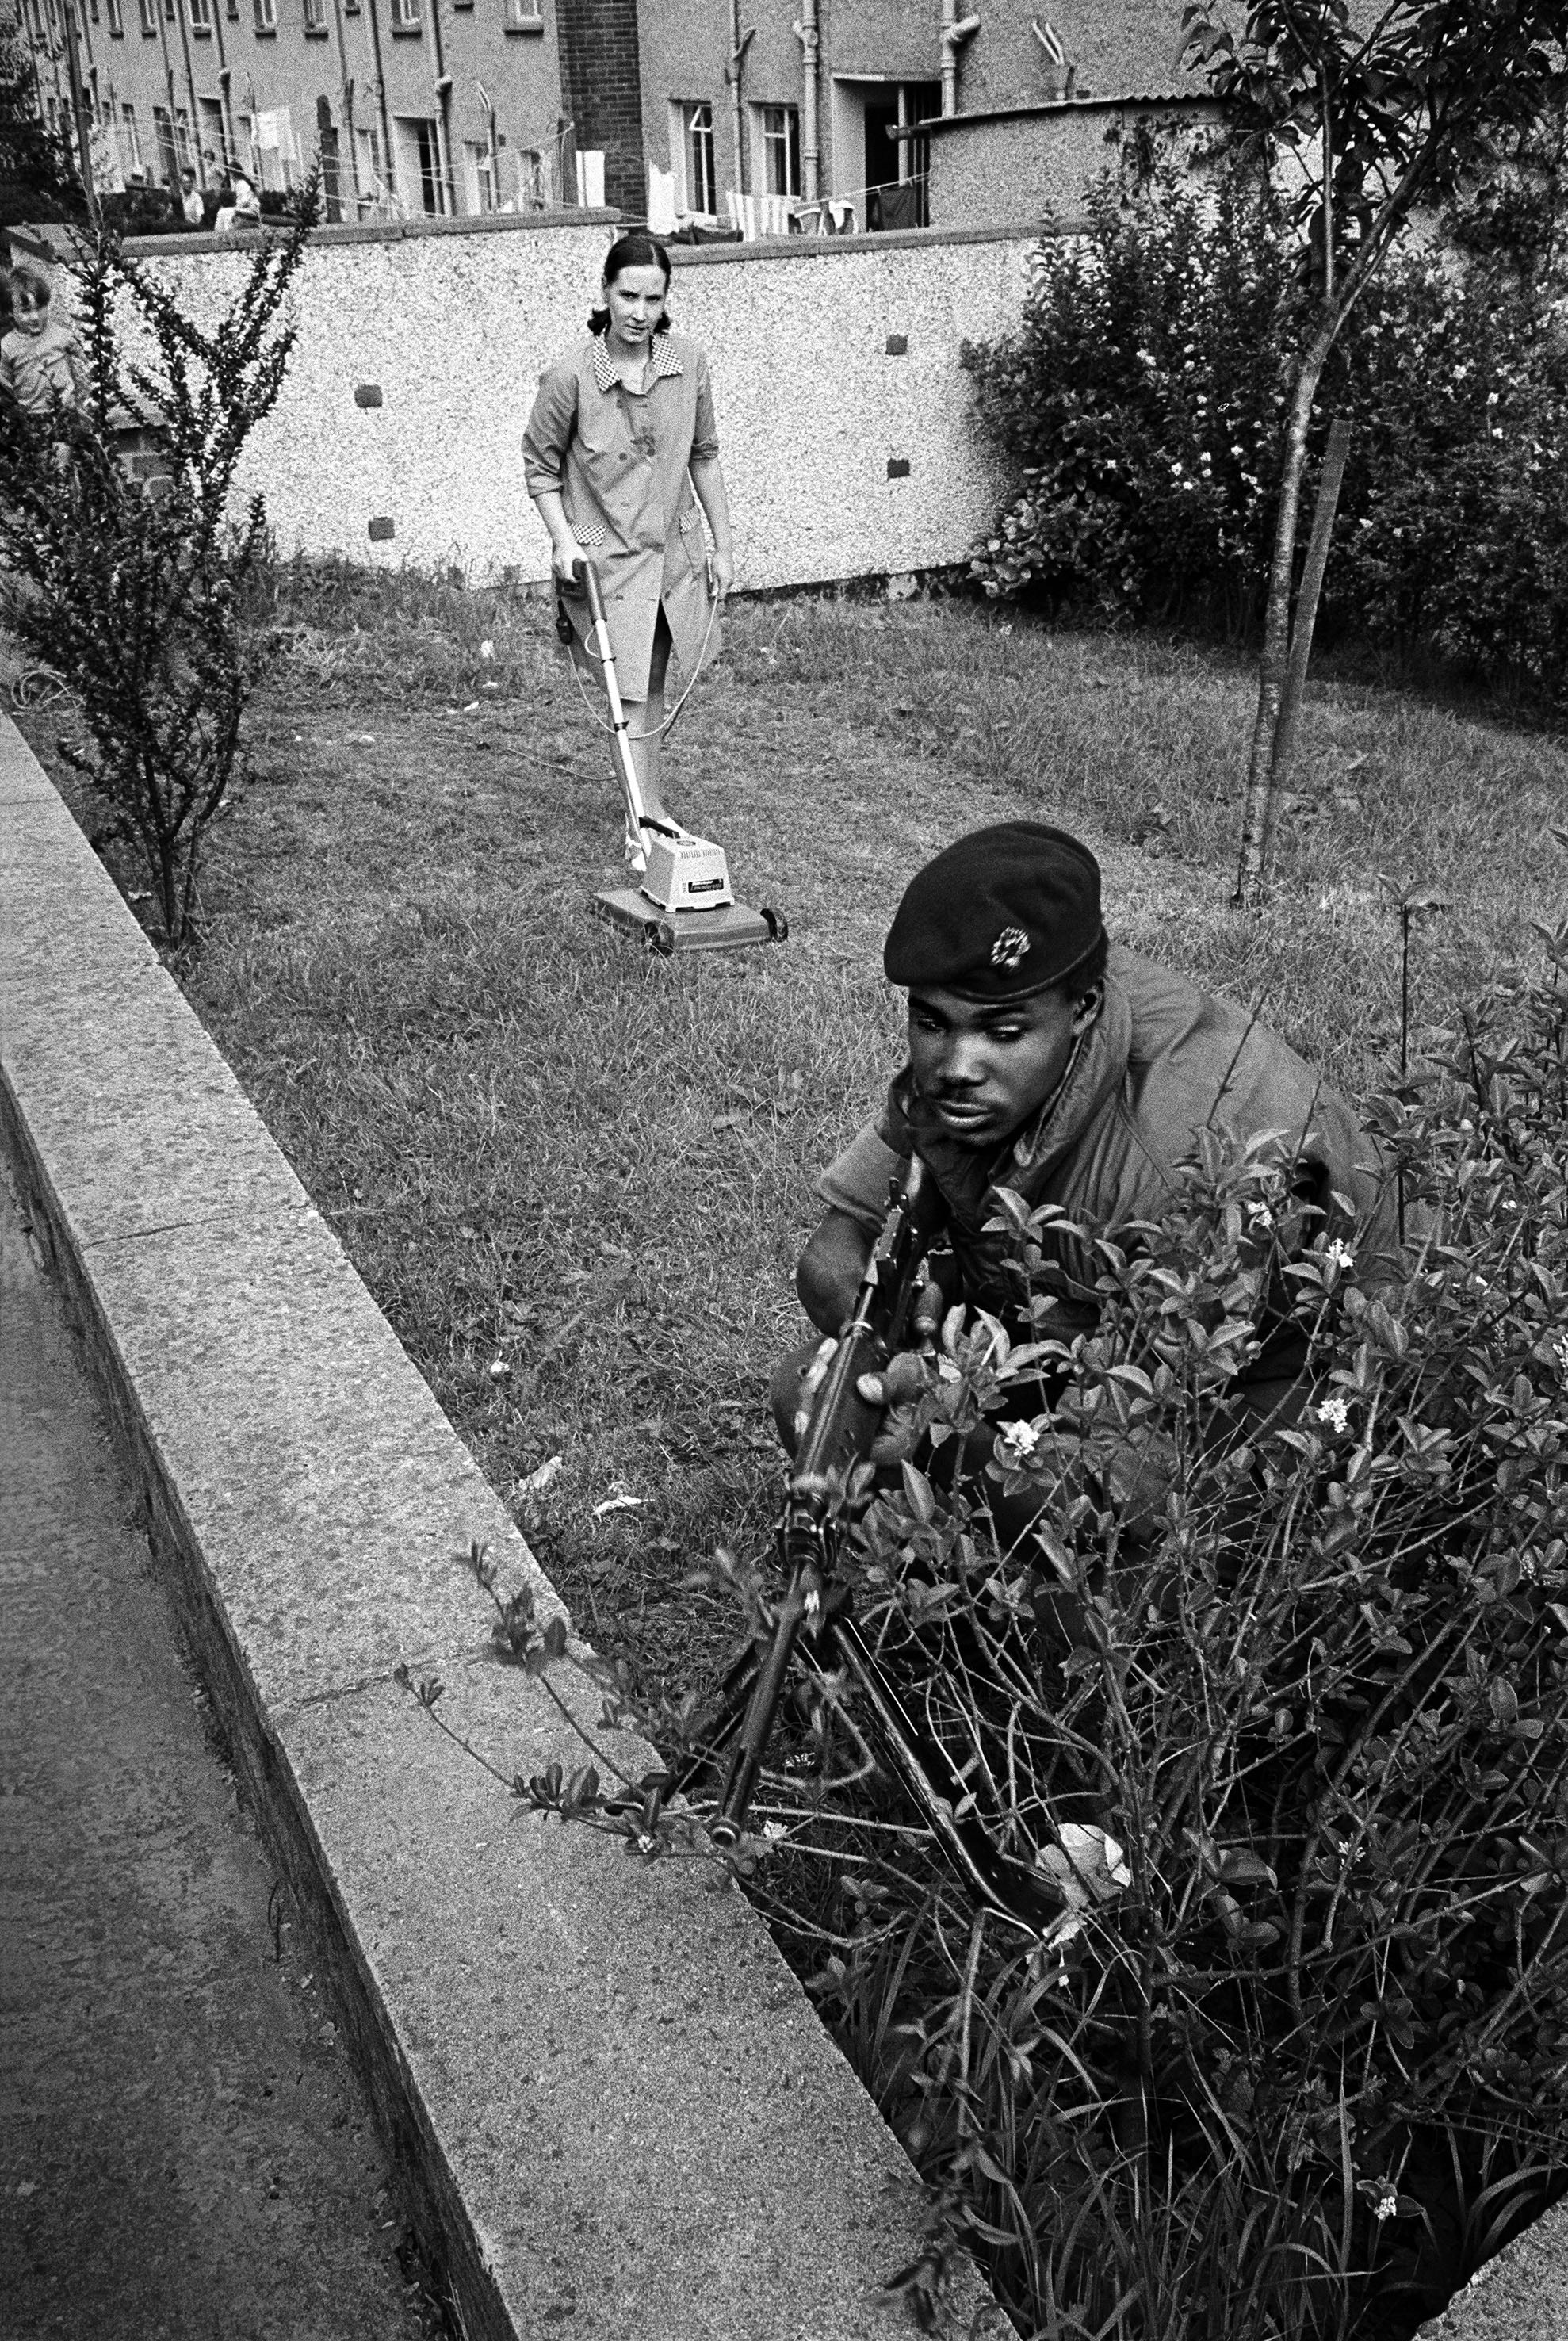 Mowing the Lawn, Northern Ireland, 1973 © Philip Jones Griffiths / Magnum Photos